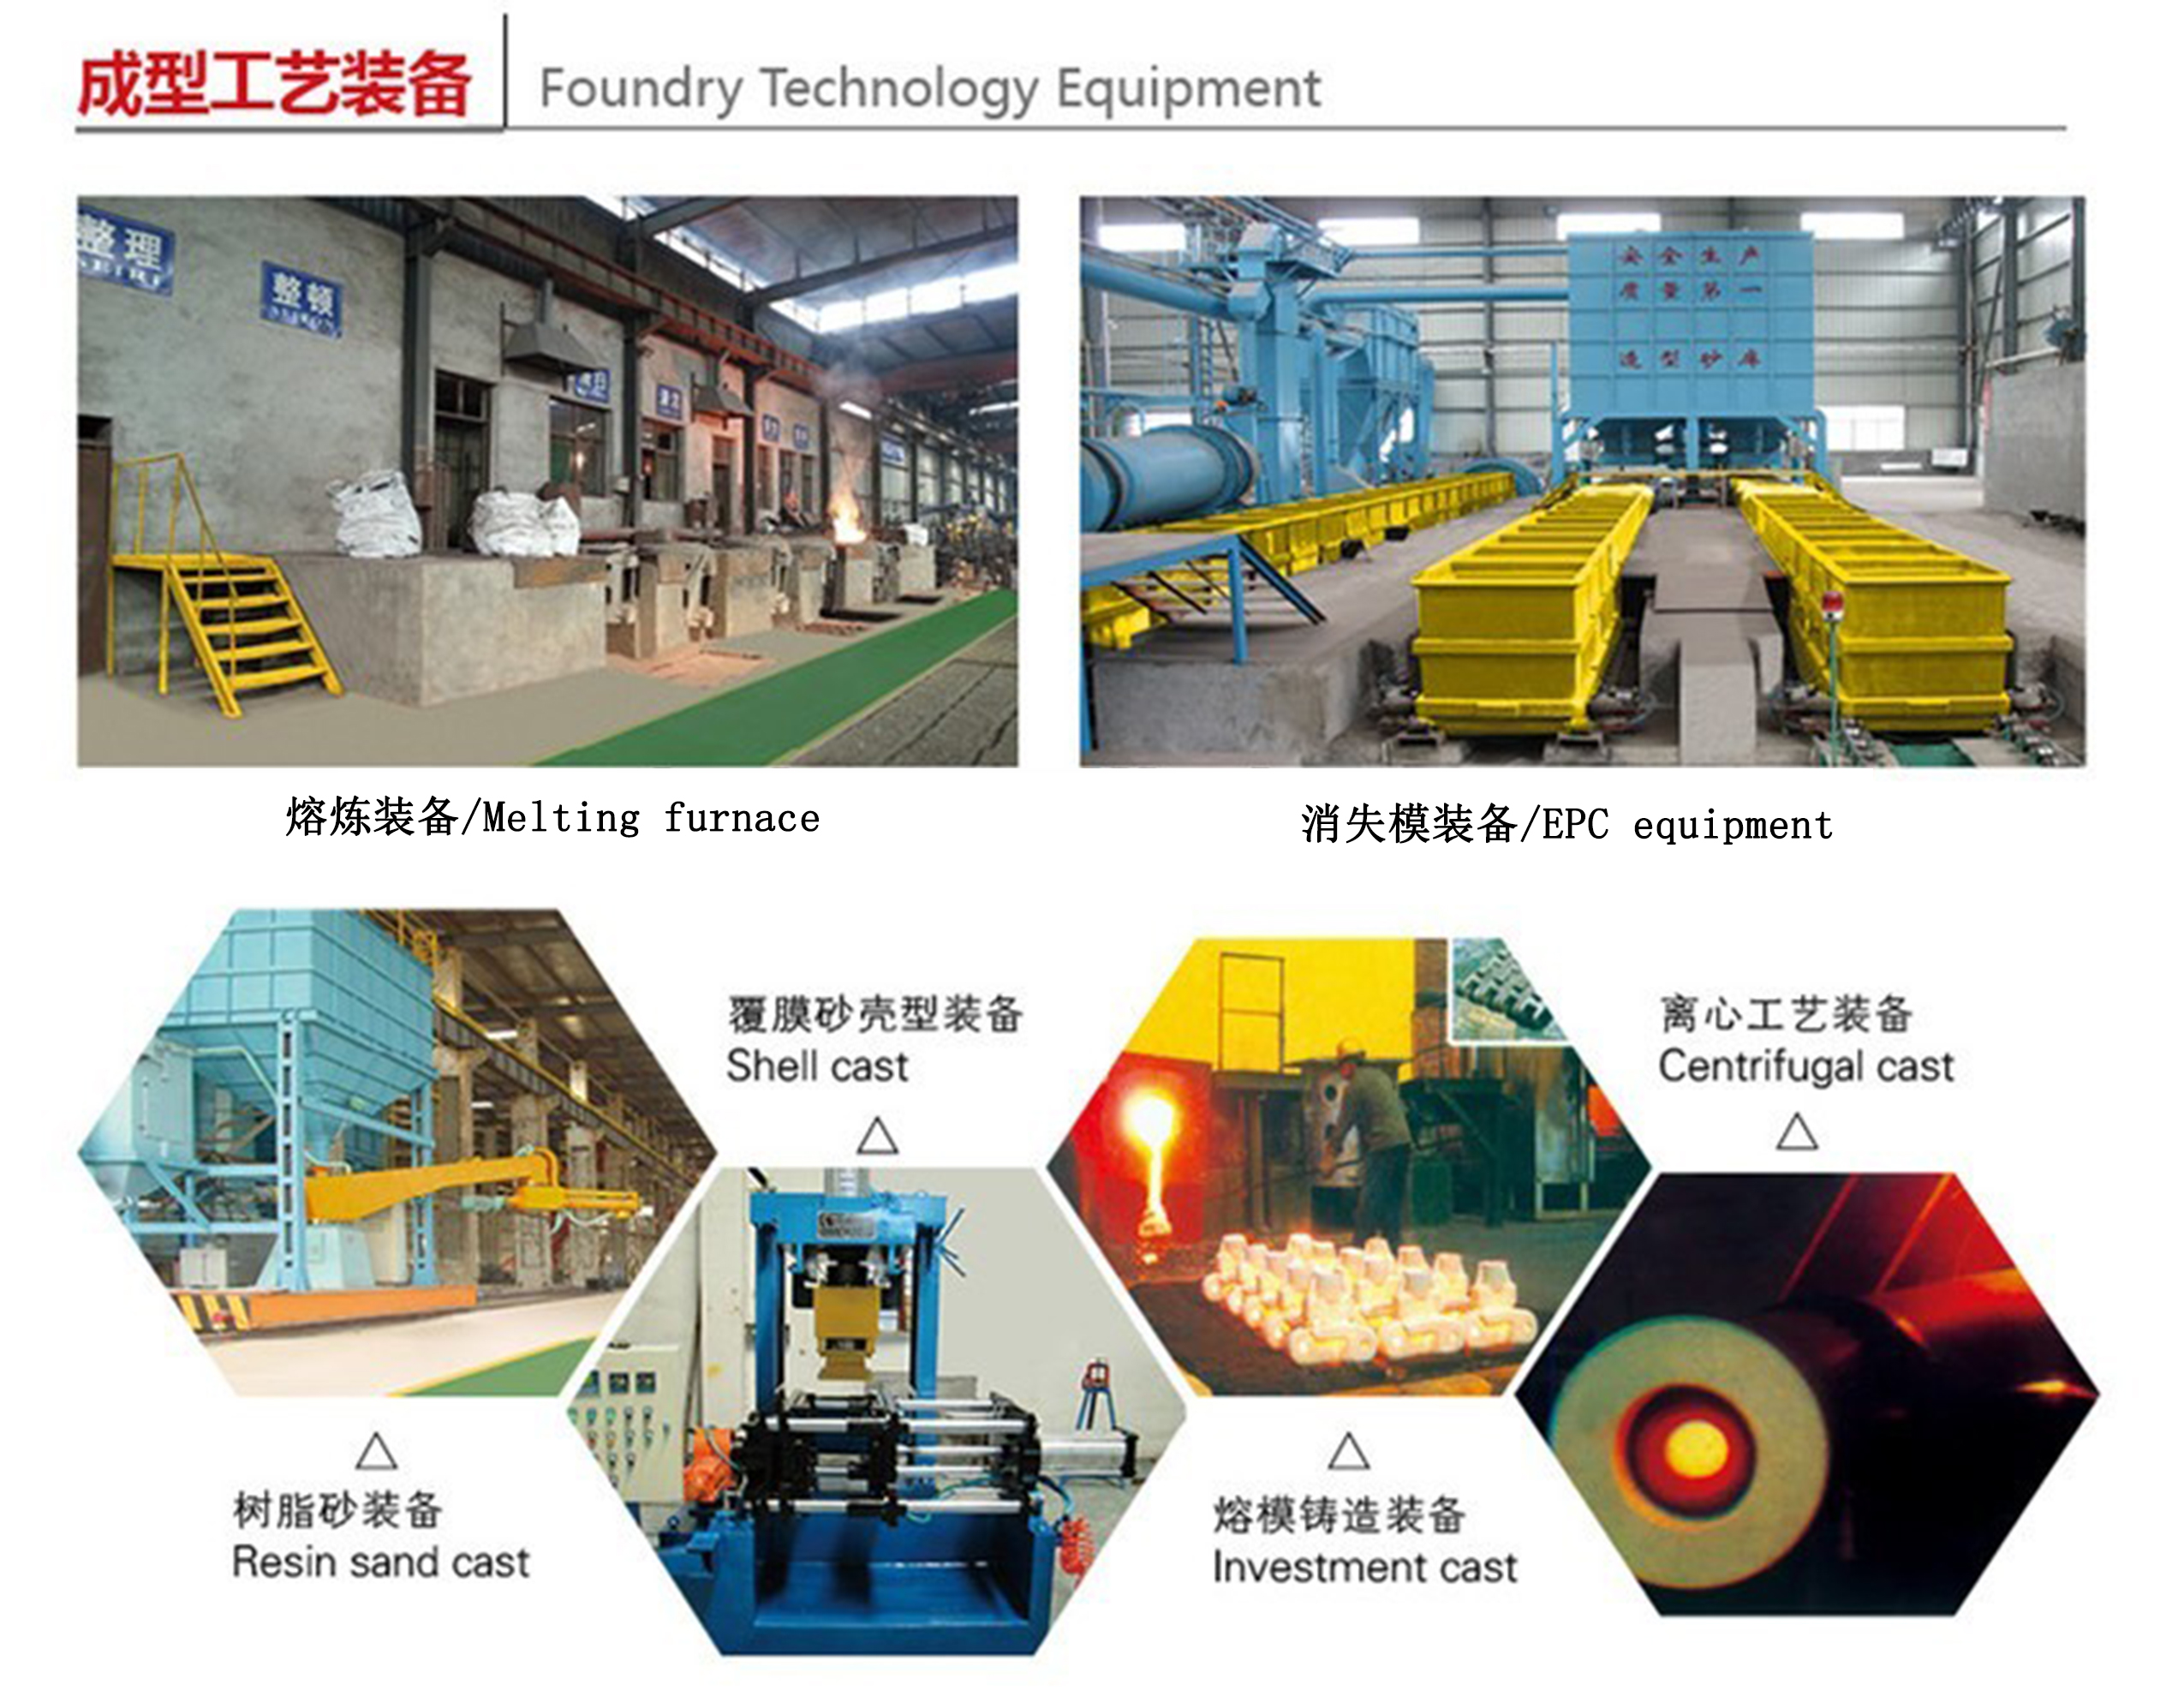 1 Foundry Technology Equipment